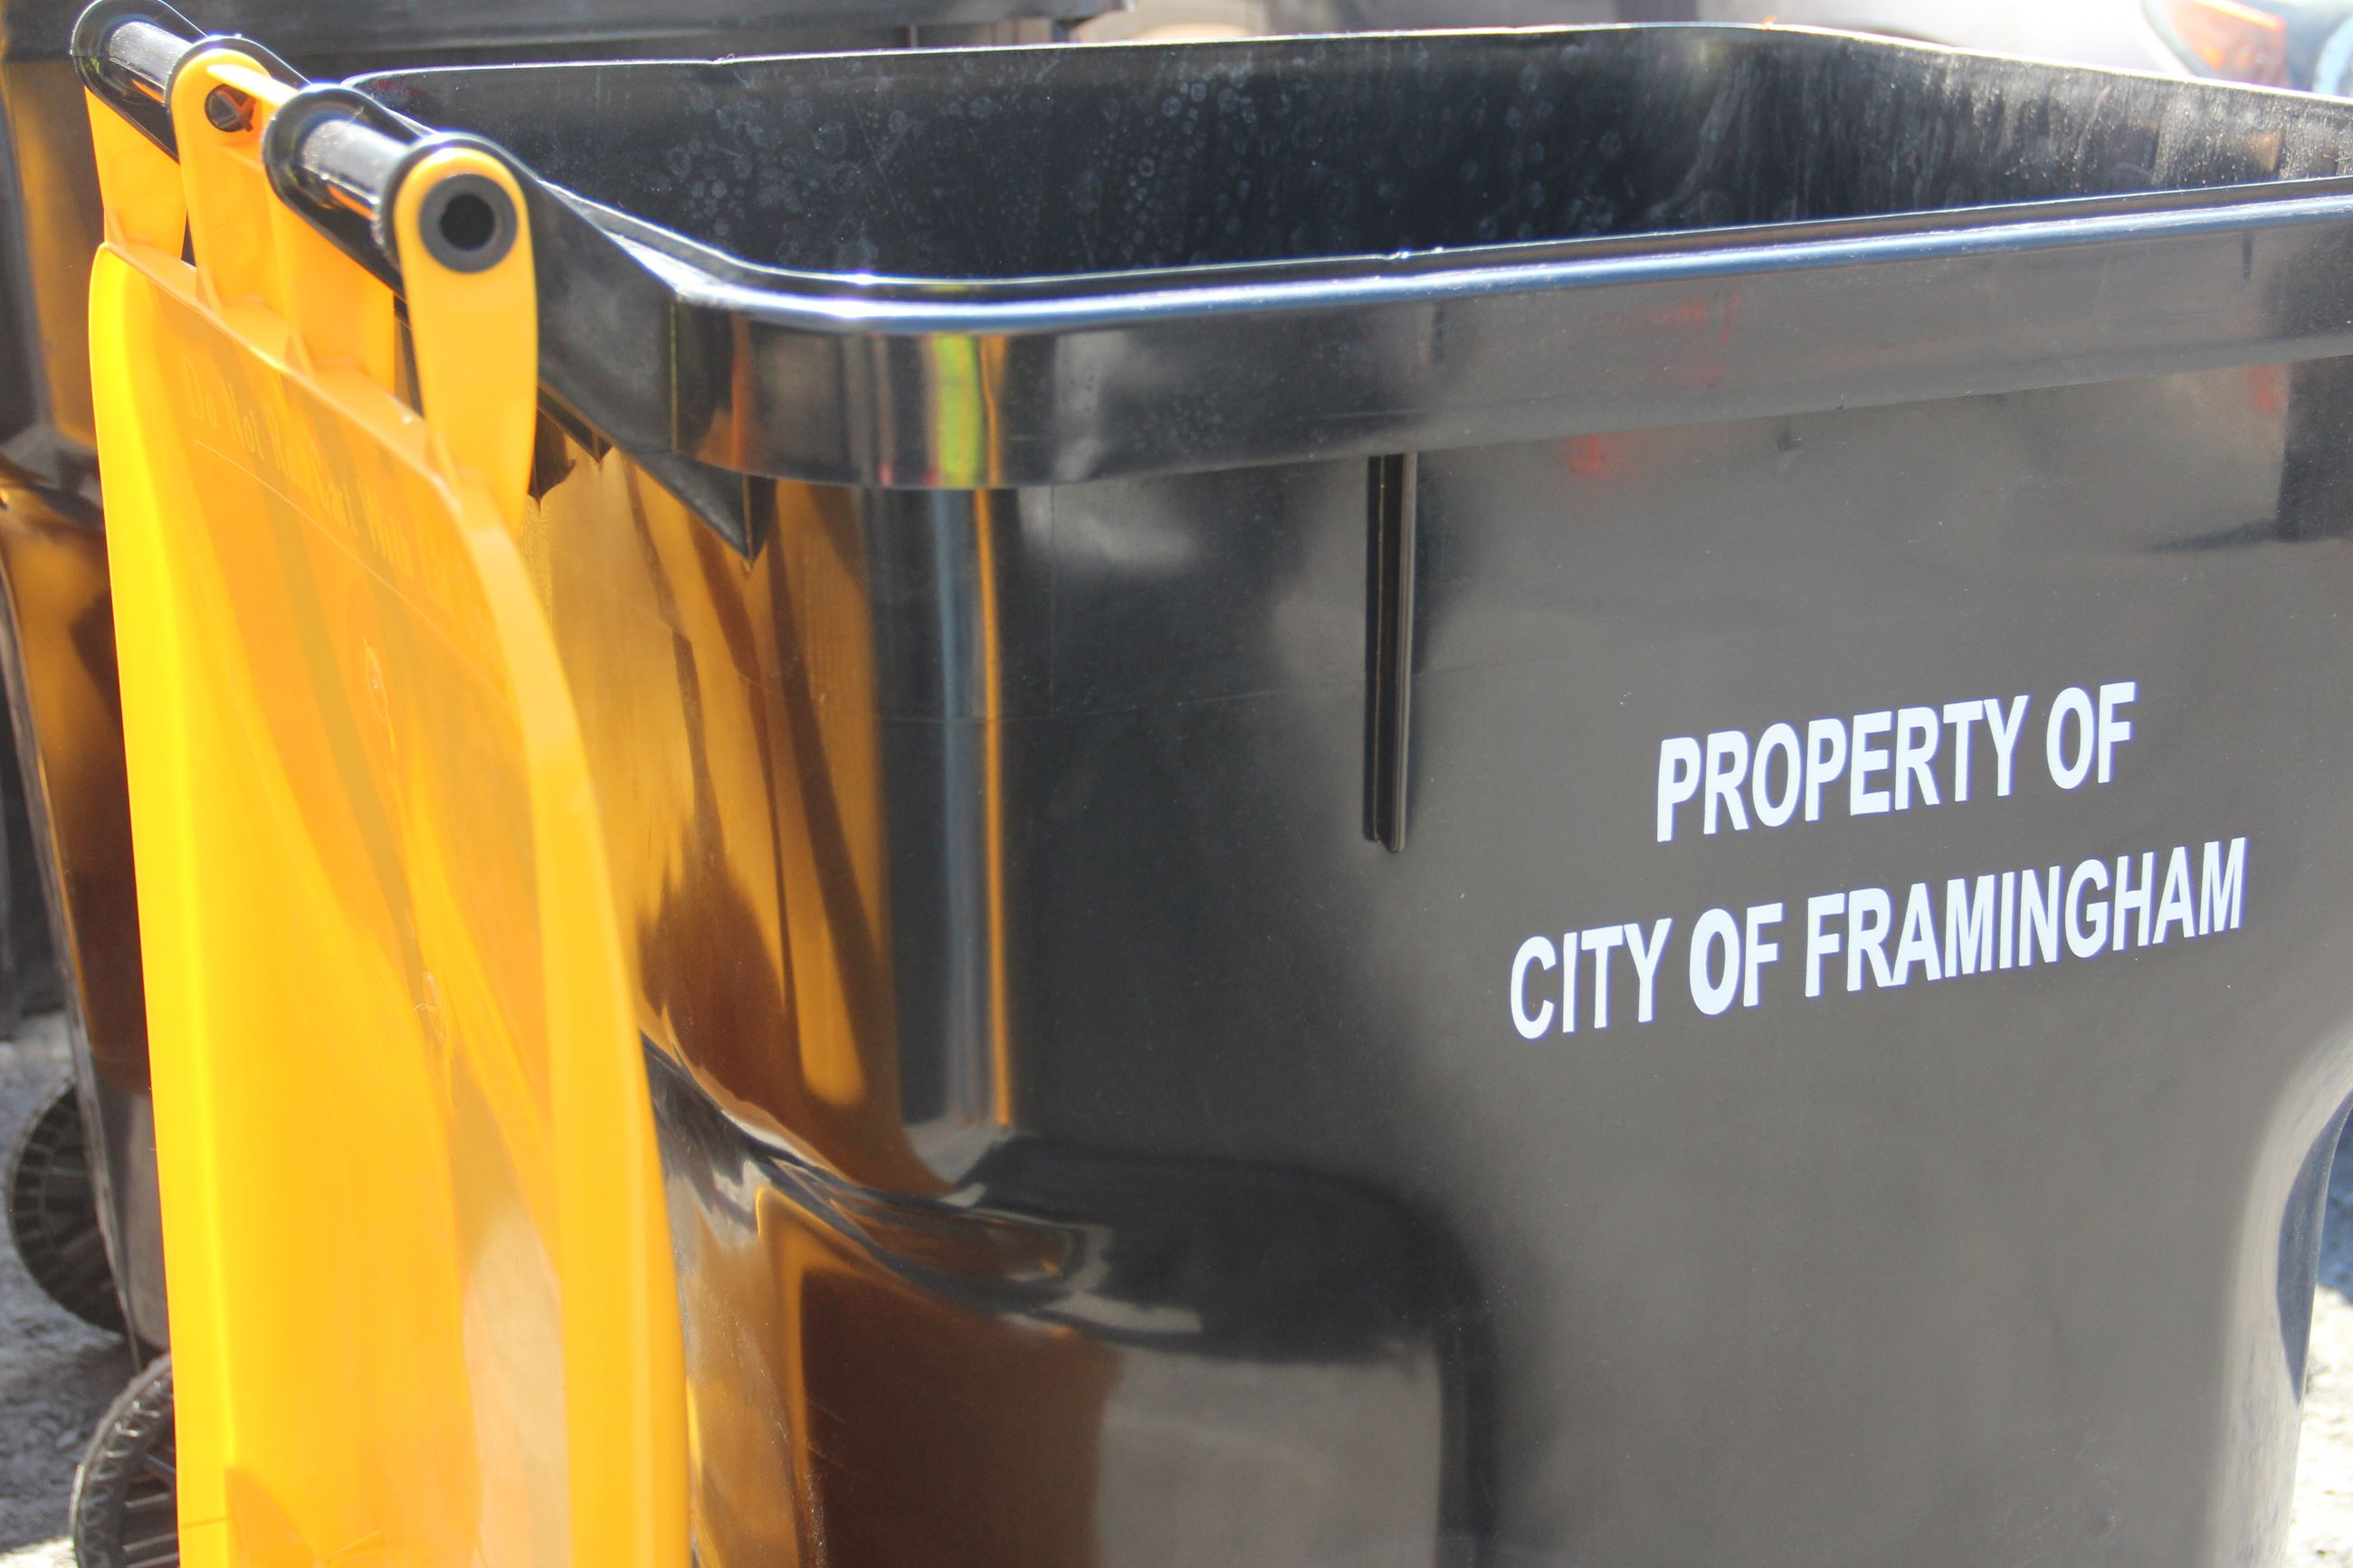 Image of a black and yellow recycling toter with text: Property of City of Framingham